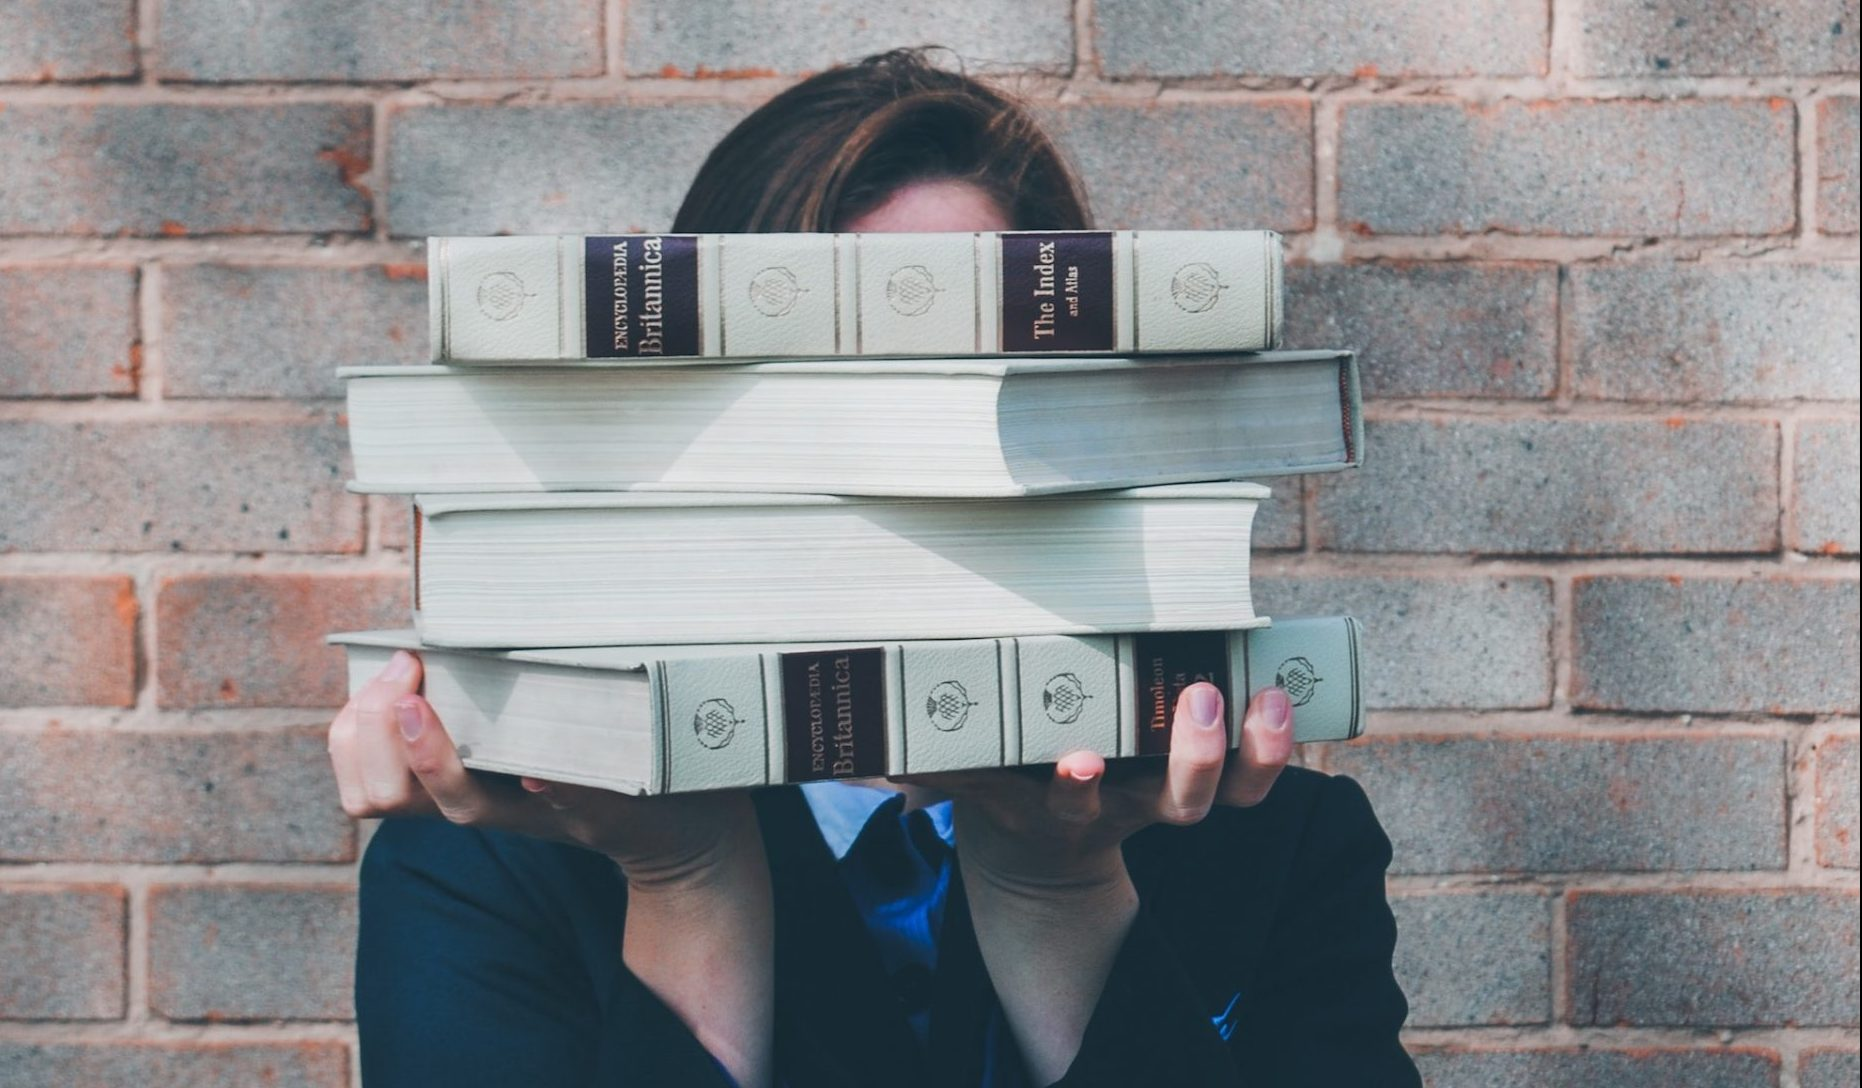 person with a stack of books held over their face